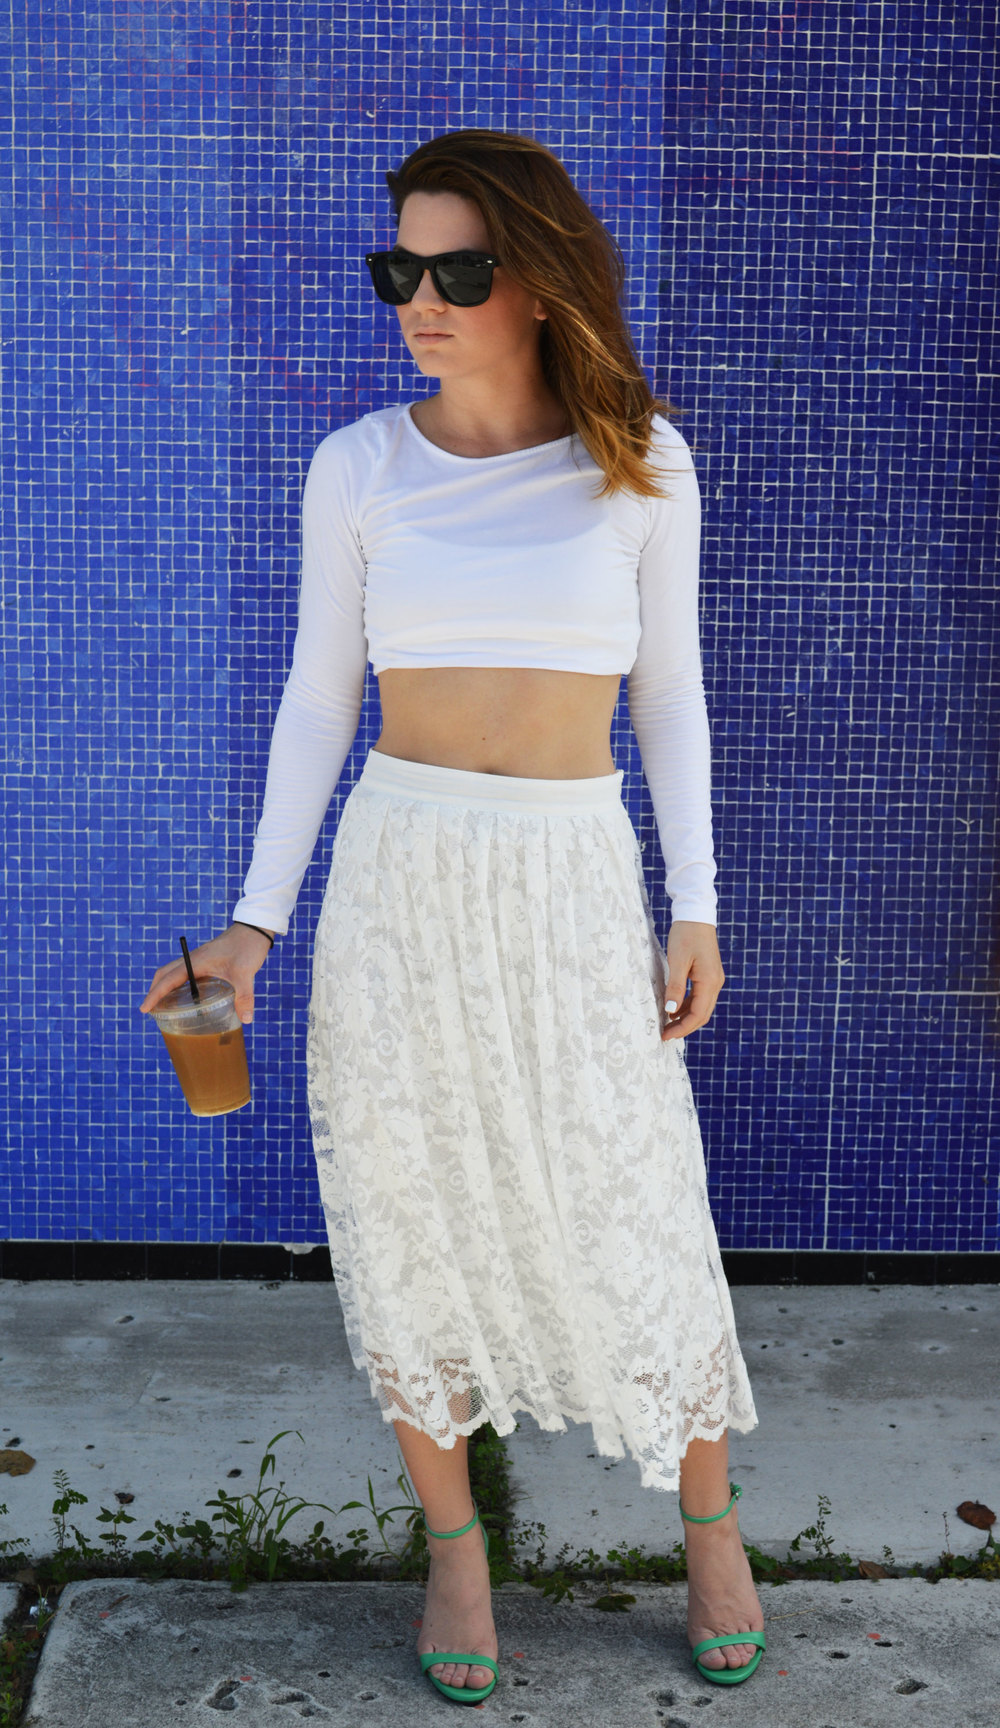 All-White-everything-OOTD-forever21-Lace-Midi-with-hm-Crop-Top-green-zara-heels-style-blogger-maimi-florida-wynwood.jpeg